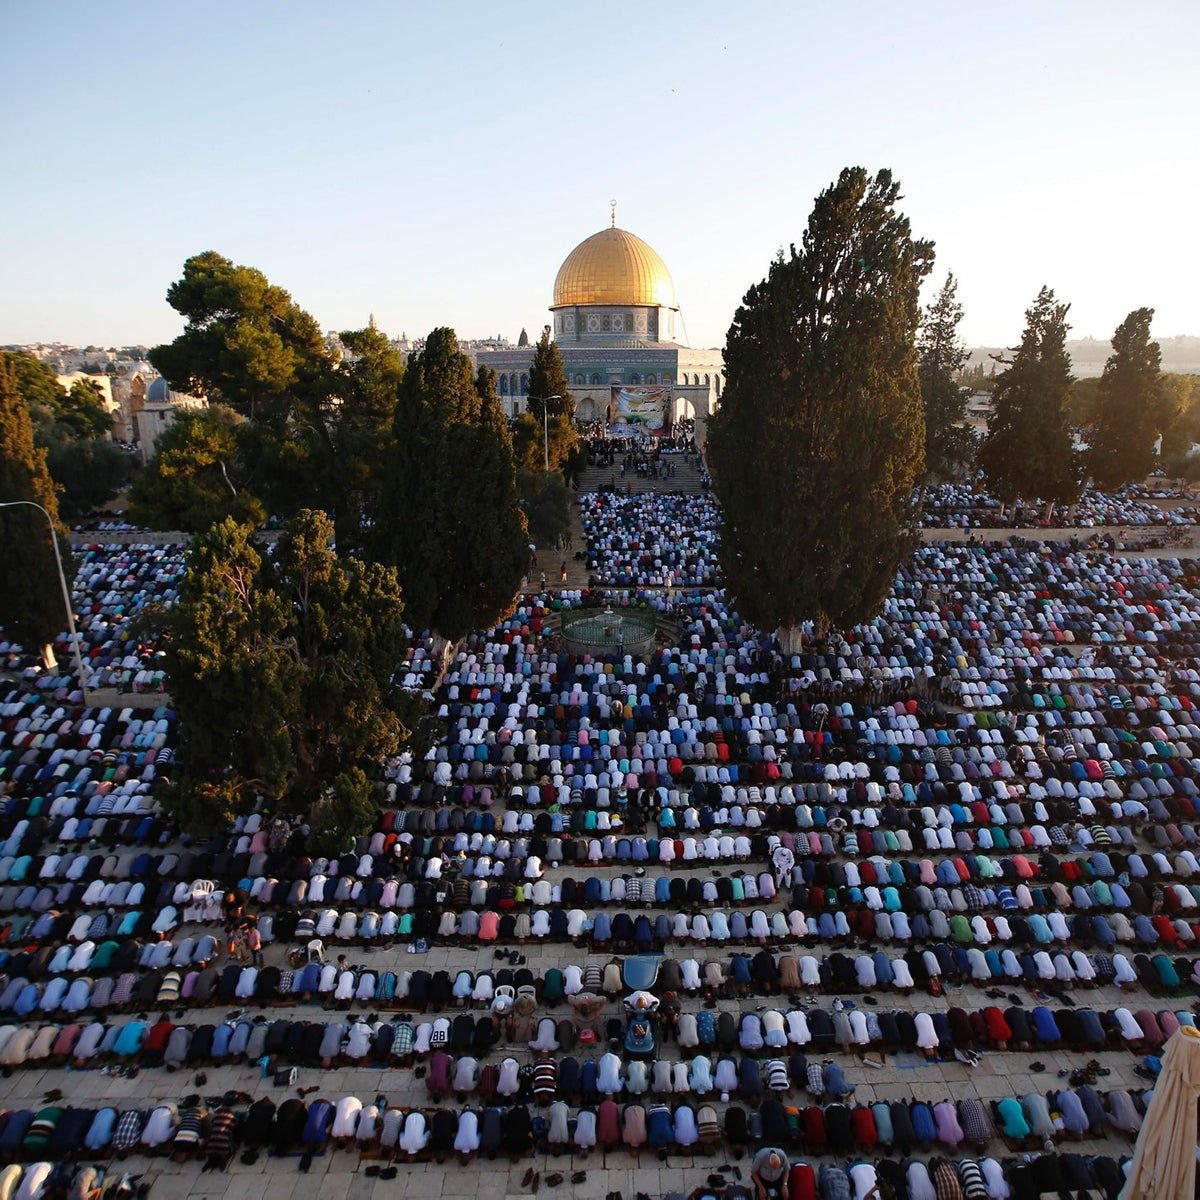 Palestinian Muslim men perform the morning Id al-Fitr prayer near the Dome of Rock at the Al-Aqsa Mosque compound in the Old City of Jerusalem on July 6, 2016.